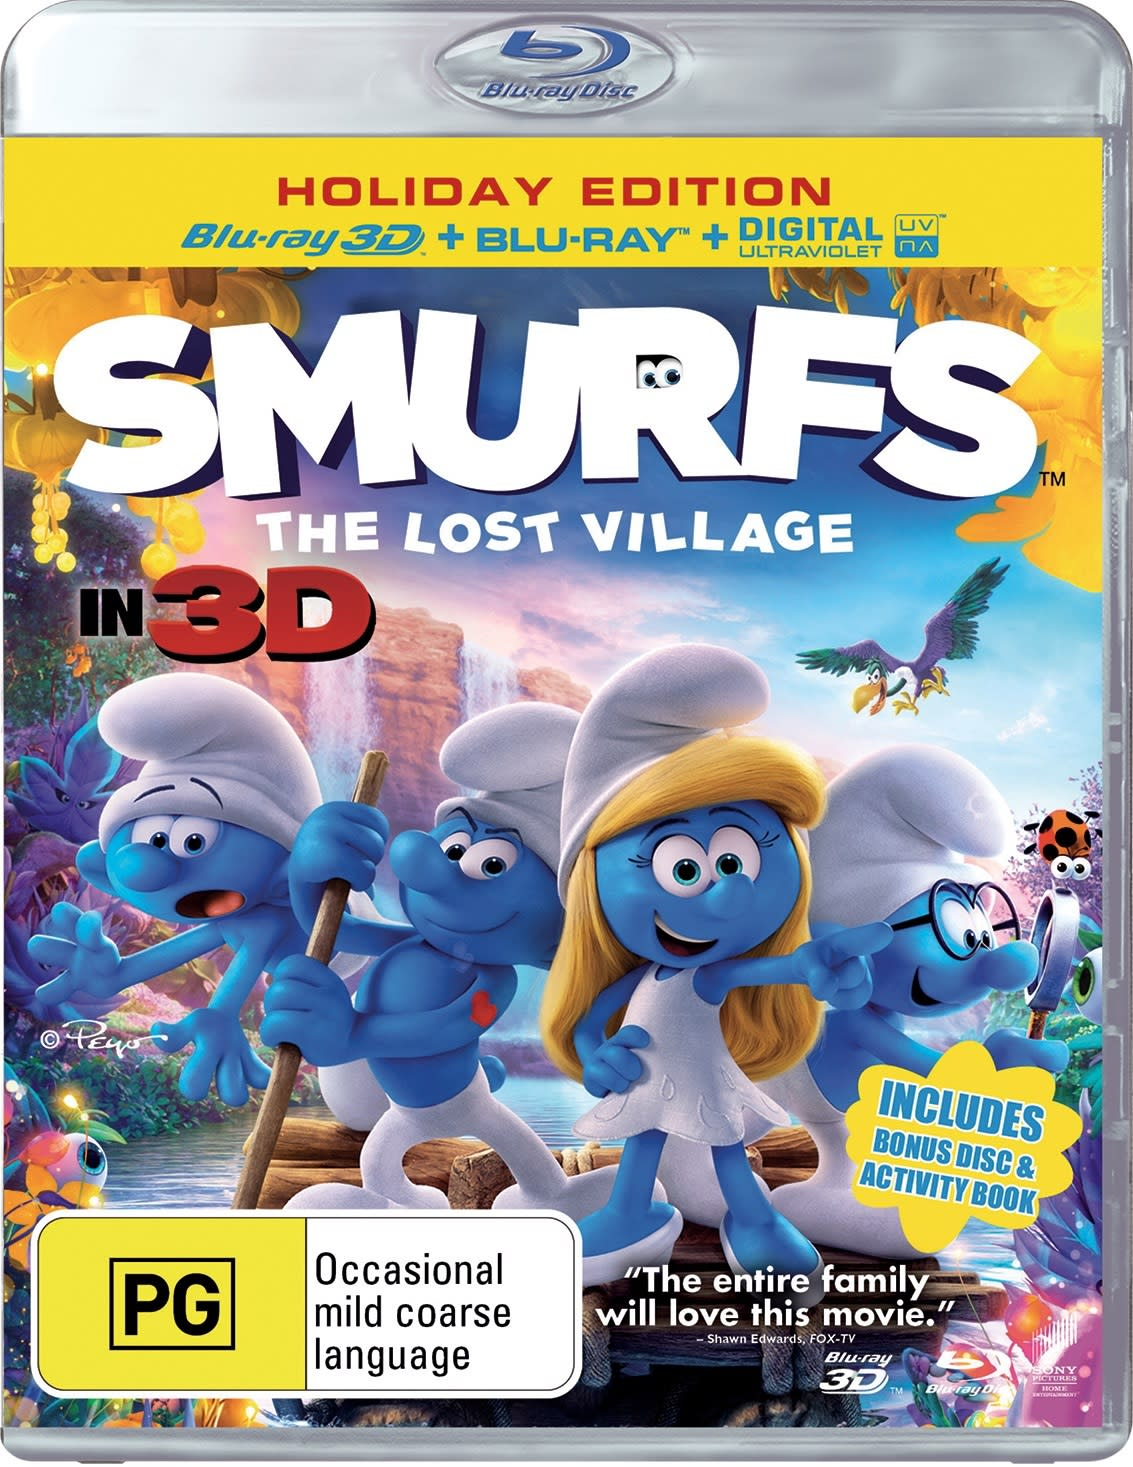 Smurfs - The Lost Village (3D Edition with 2D Edition + UltraViolet Copy) [Blu-ray]